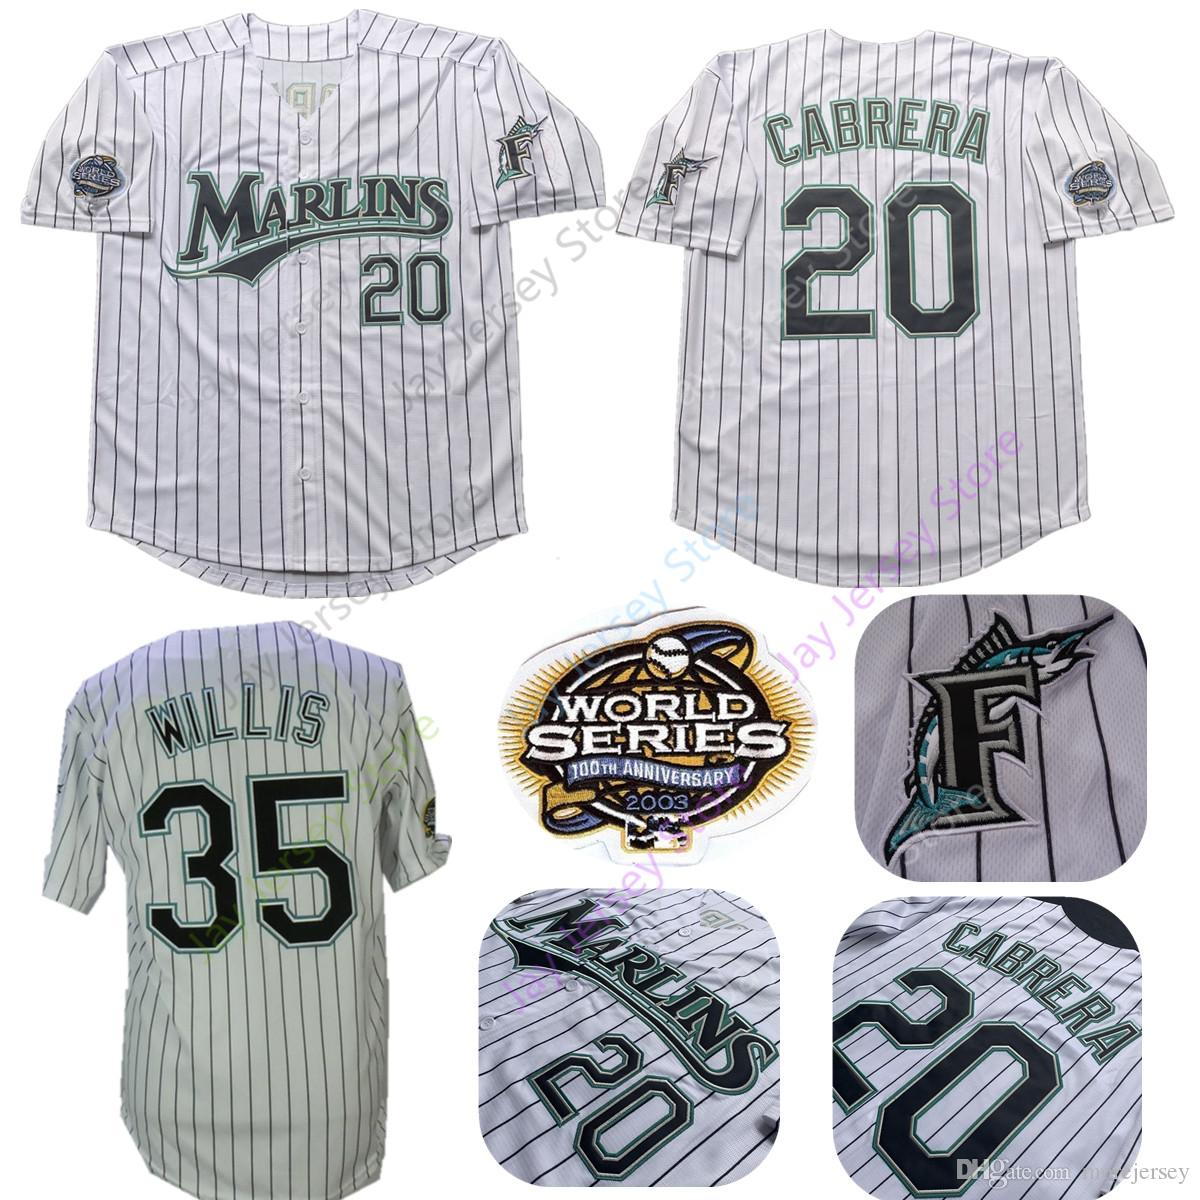 760f3e5b 2019 Dontrelle Willis Florida Marlins Jerseys 2003 WS World Series 20  Miguel Cabrera Jersey White Pinstripe Home Size M L XL 2XL 3XL From  Morejersey, ...